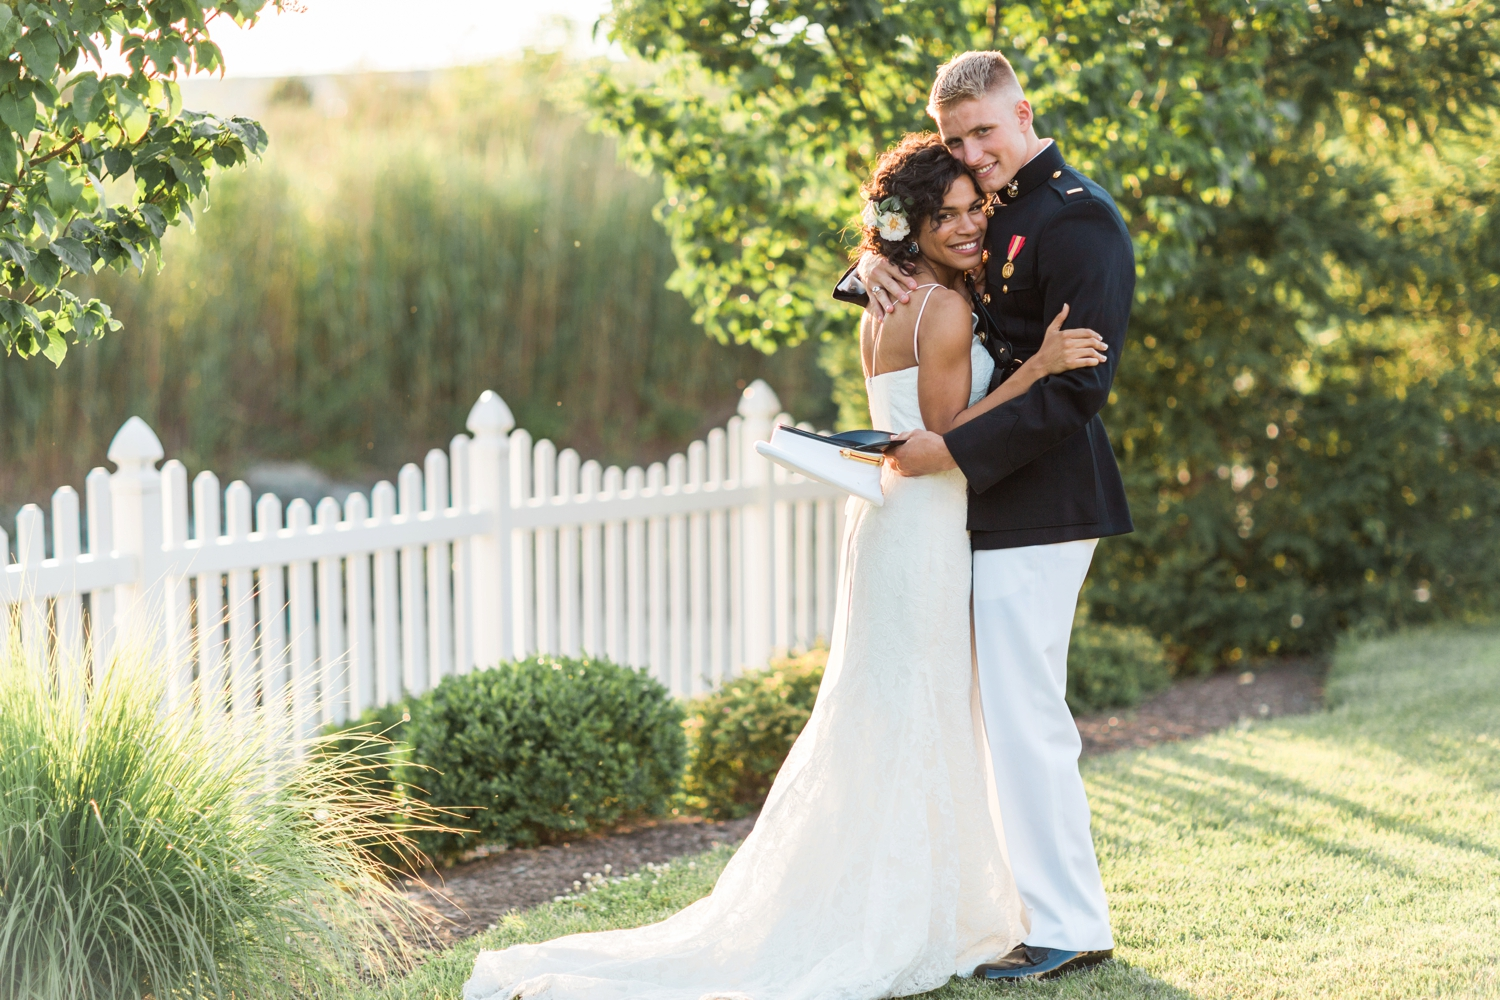 Wedding-at-The-Savannah-Center-West-Chester-Ohio-Photography-Chloe-Luka-Photography_7539.jpg